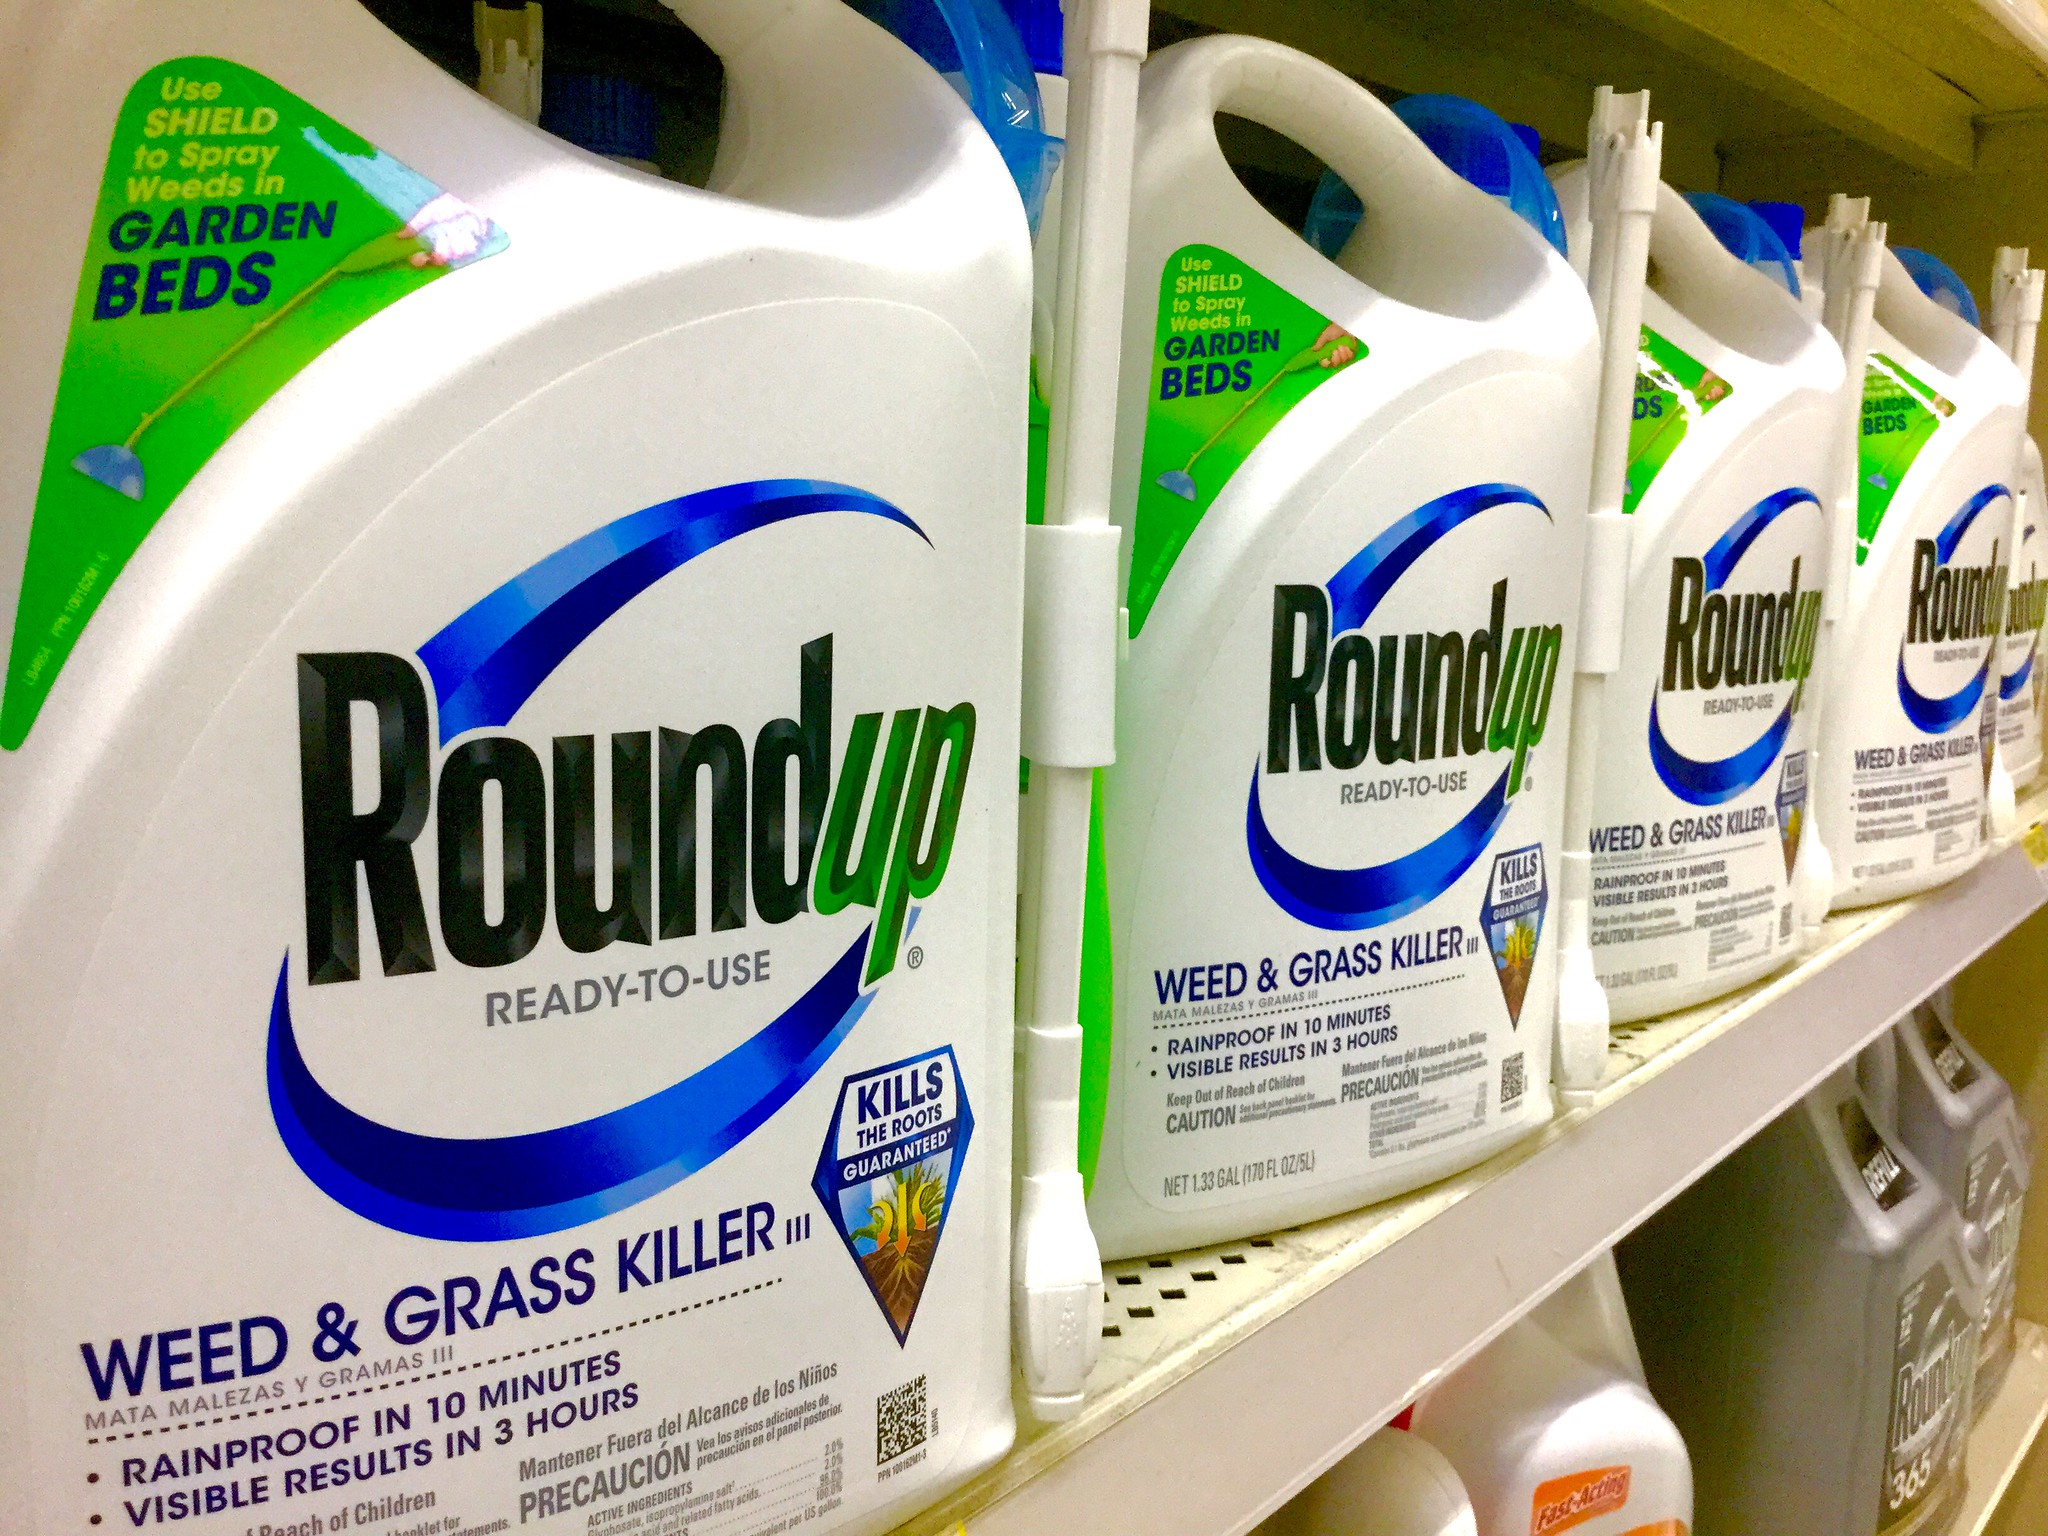 Roundup chemical